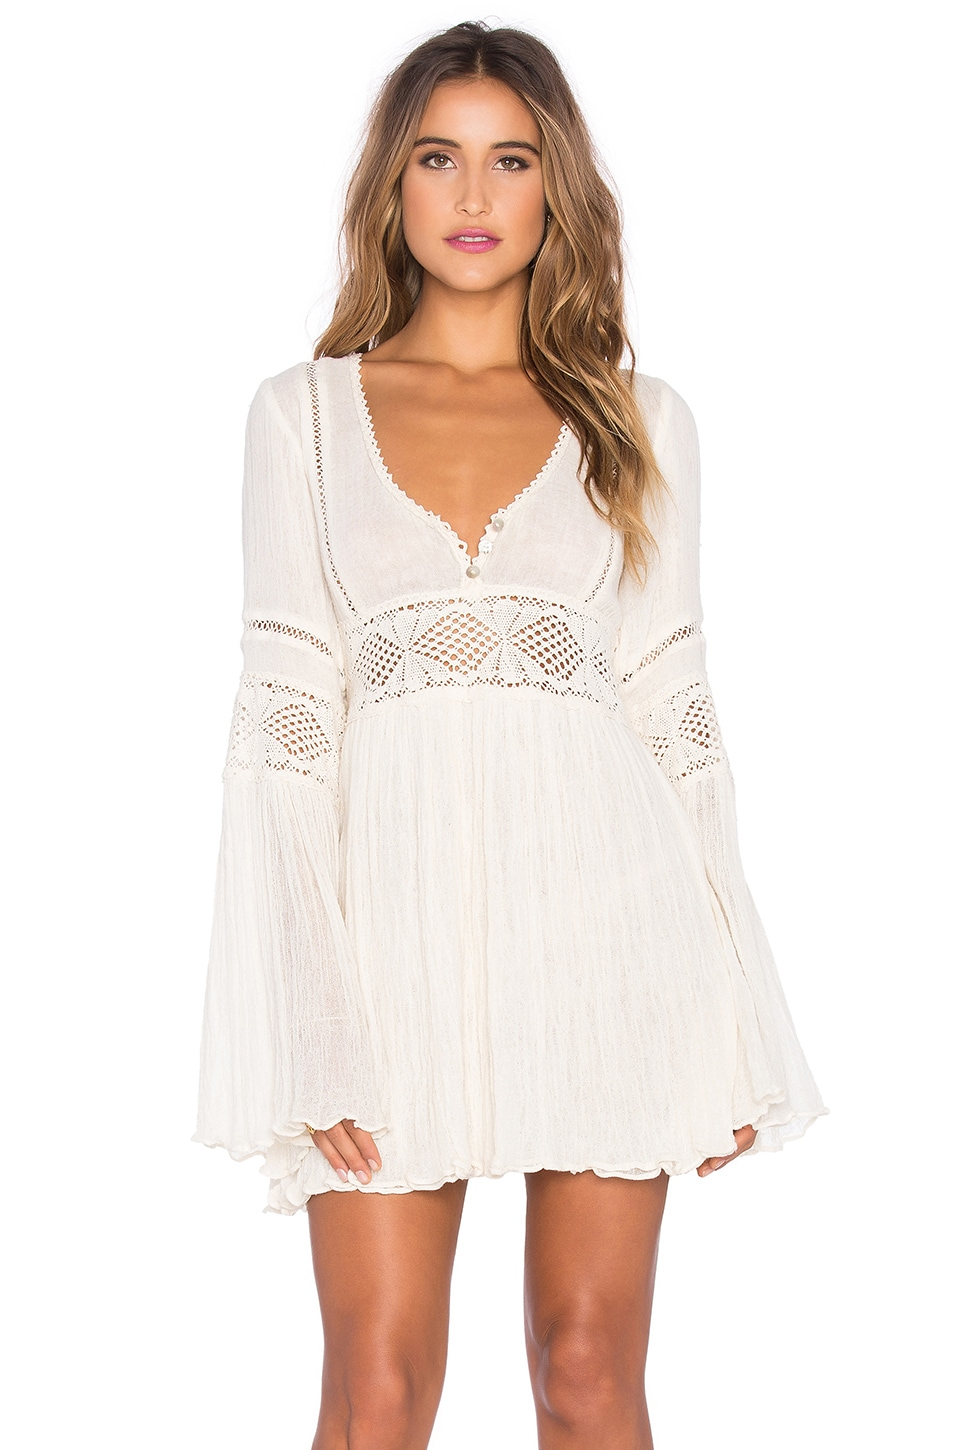 Jen's Pirate Booty Enchanted Babydoll Dress in Natural